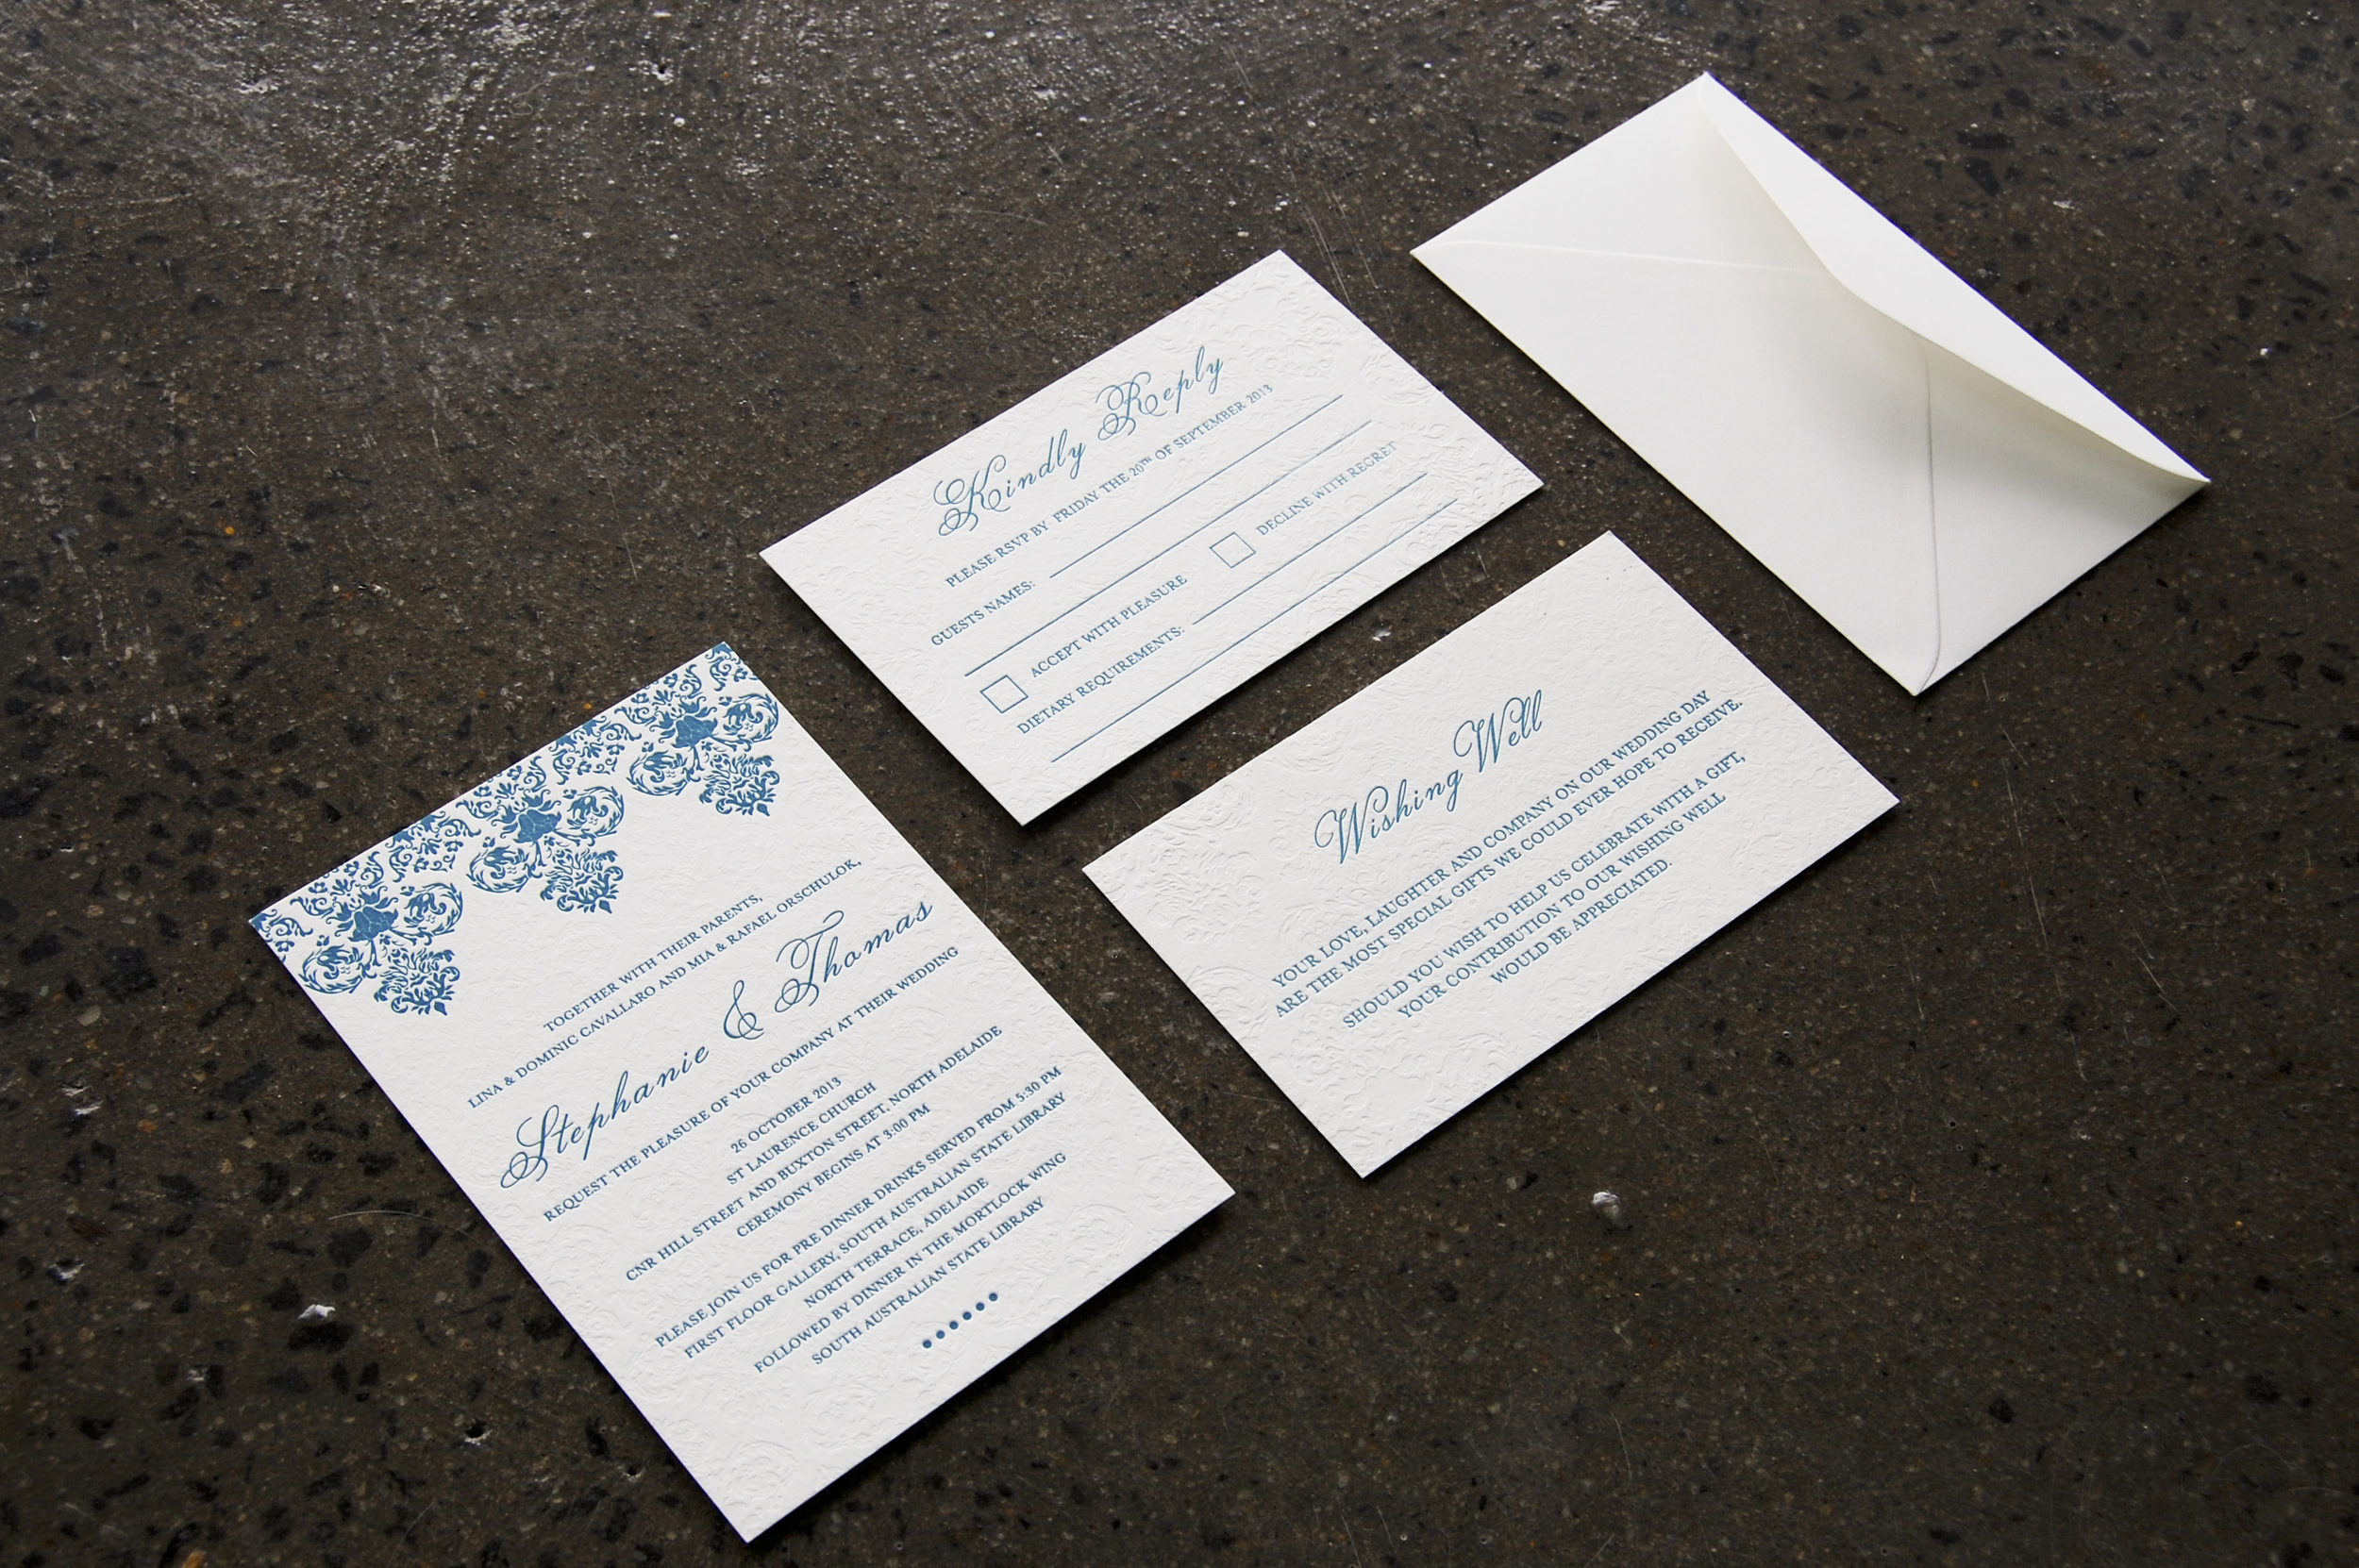 Baroque & Blind {Letterpress}